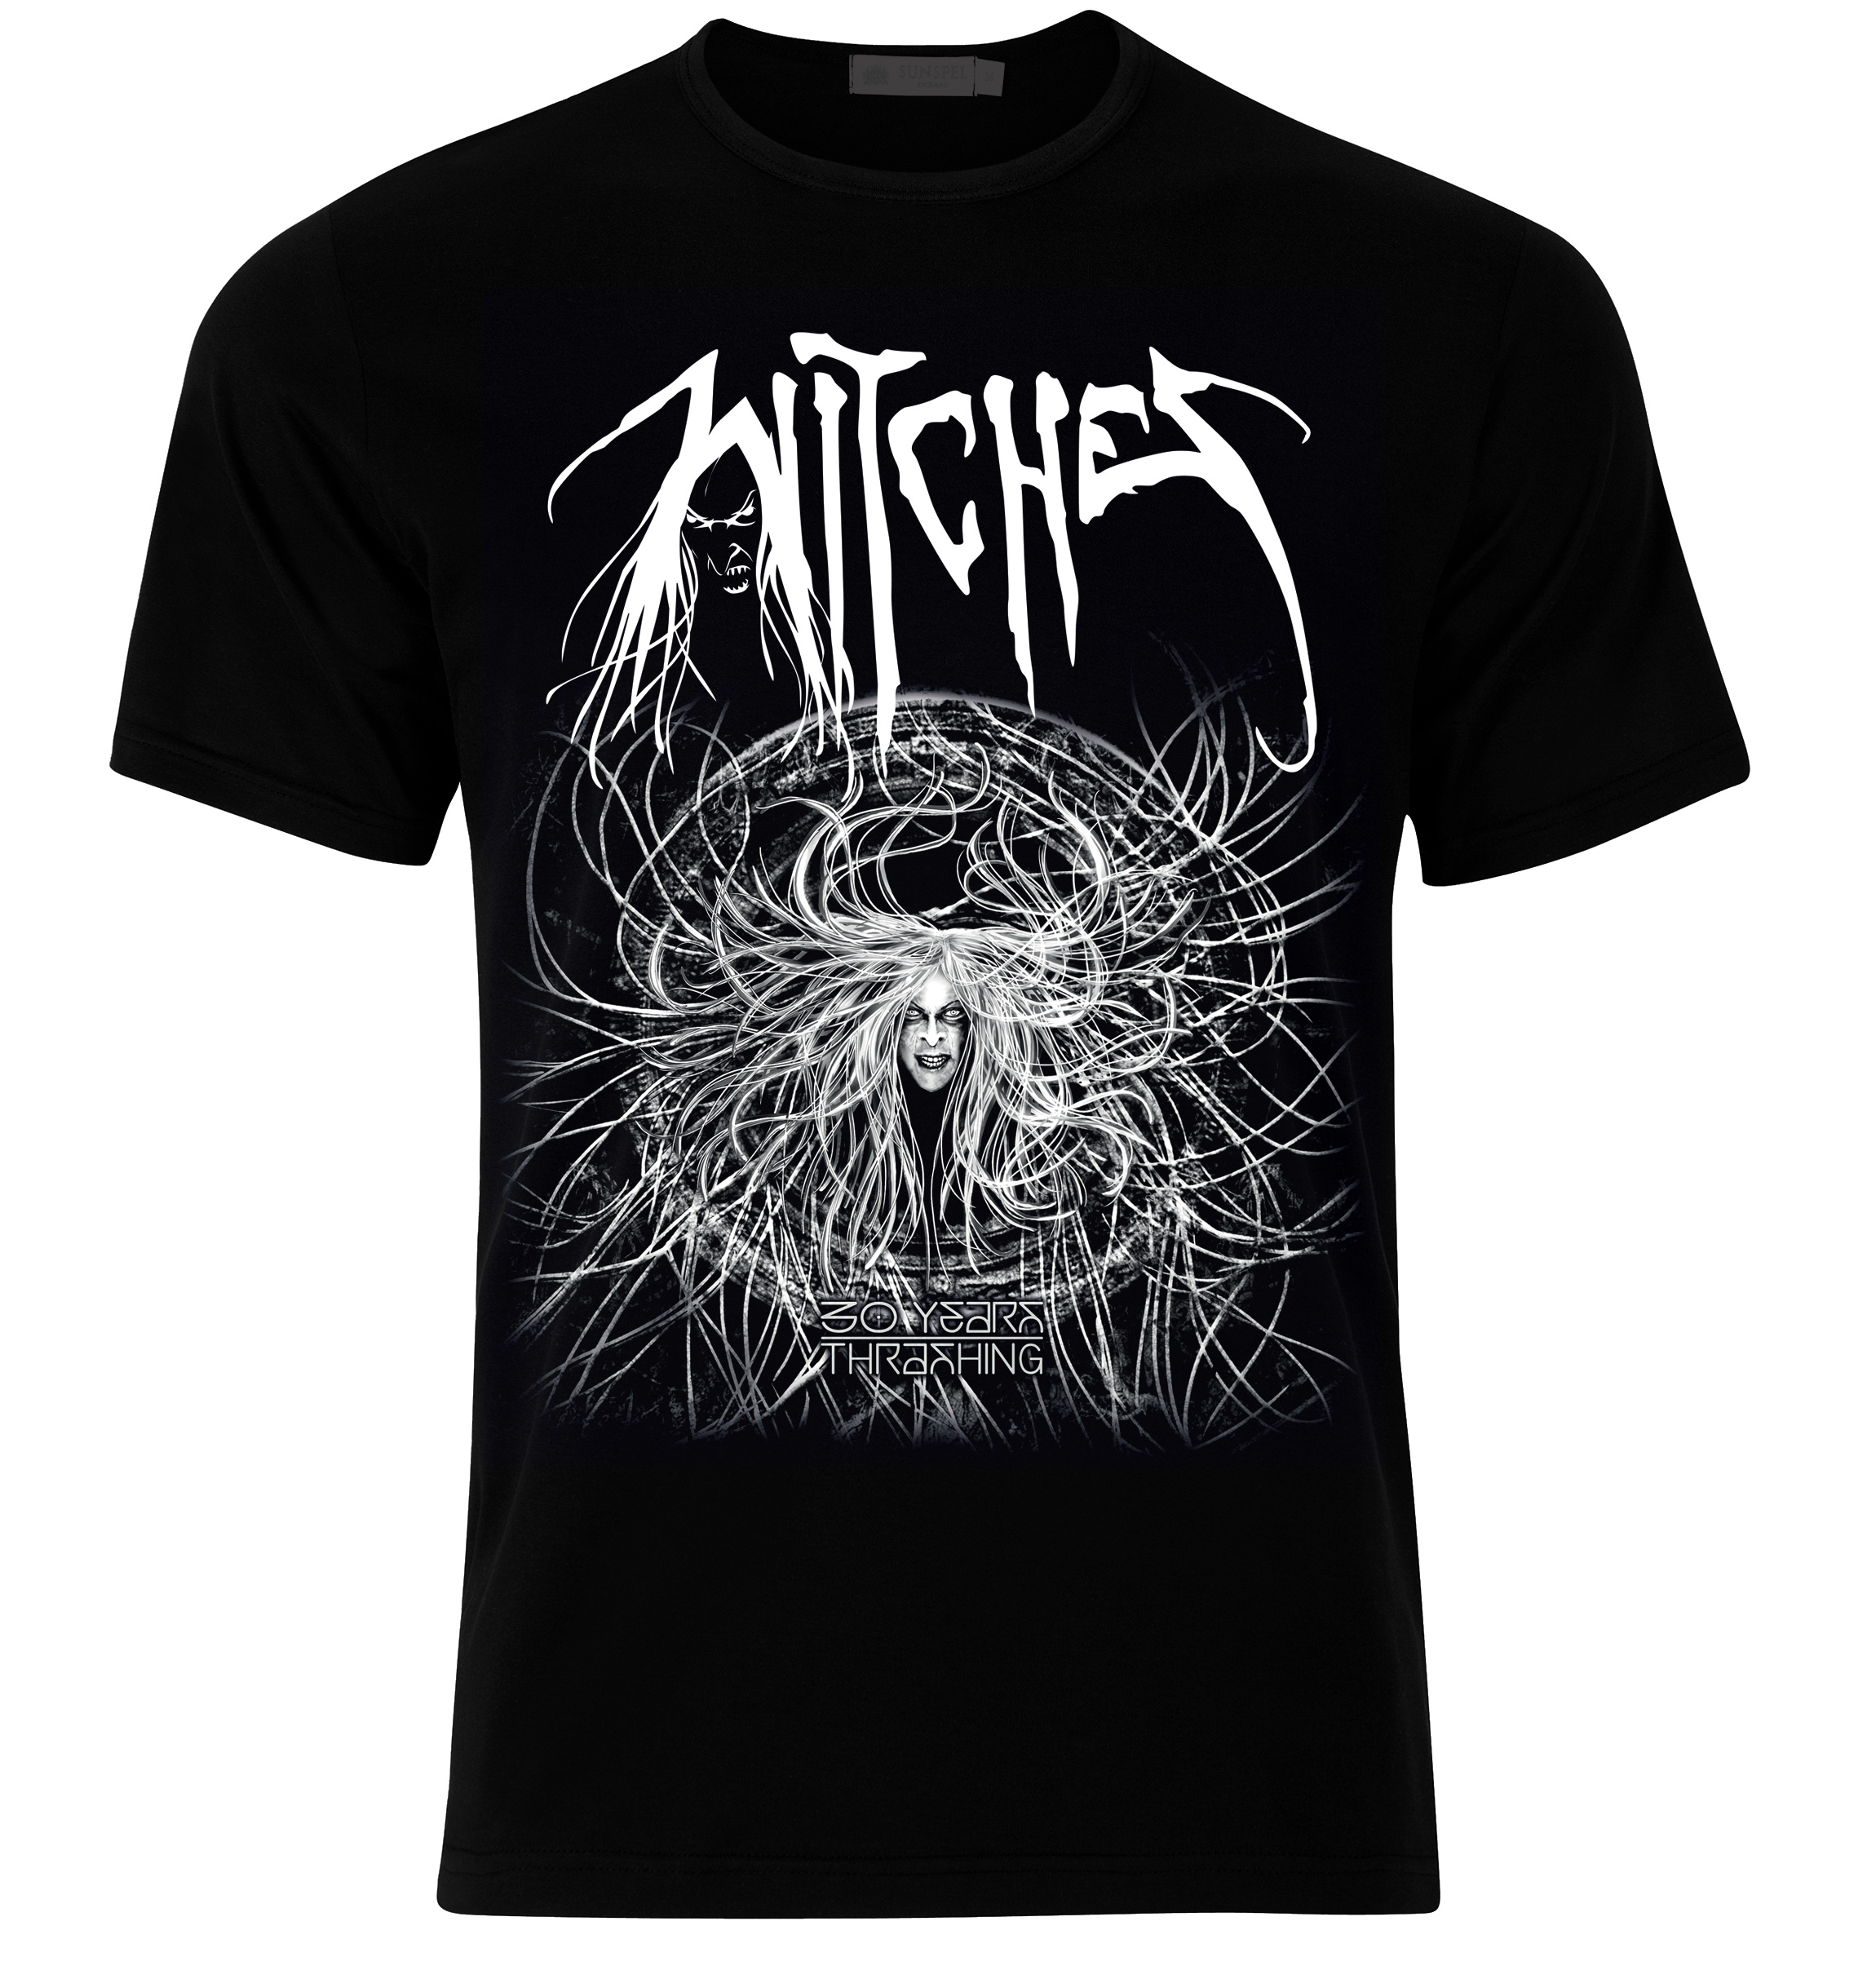 Witches T.Shirt 30 Years Thrashing